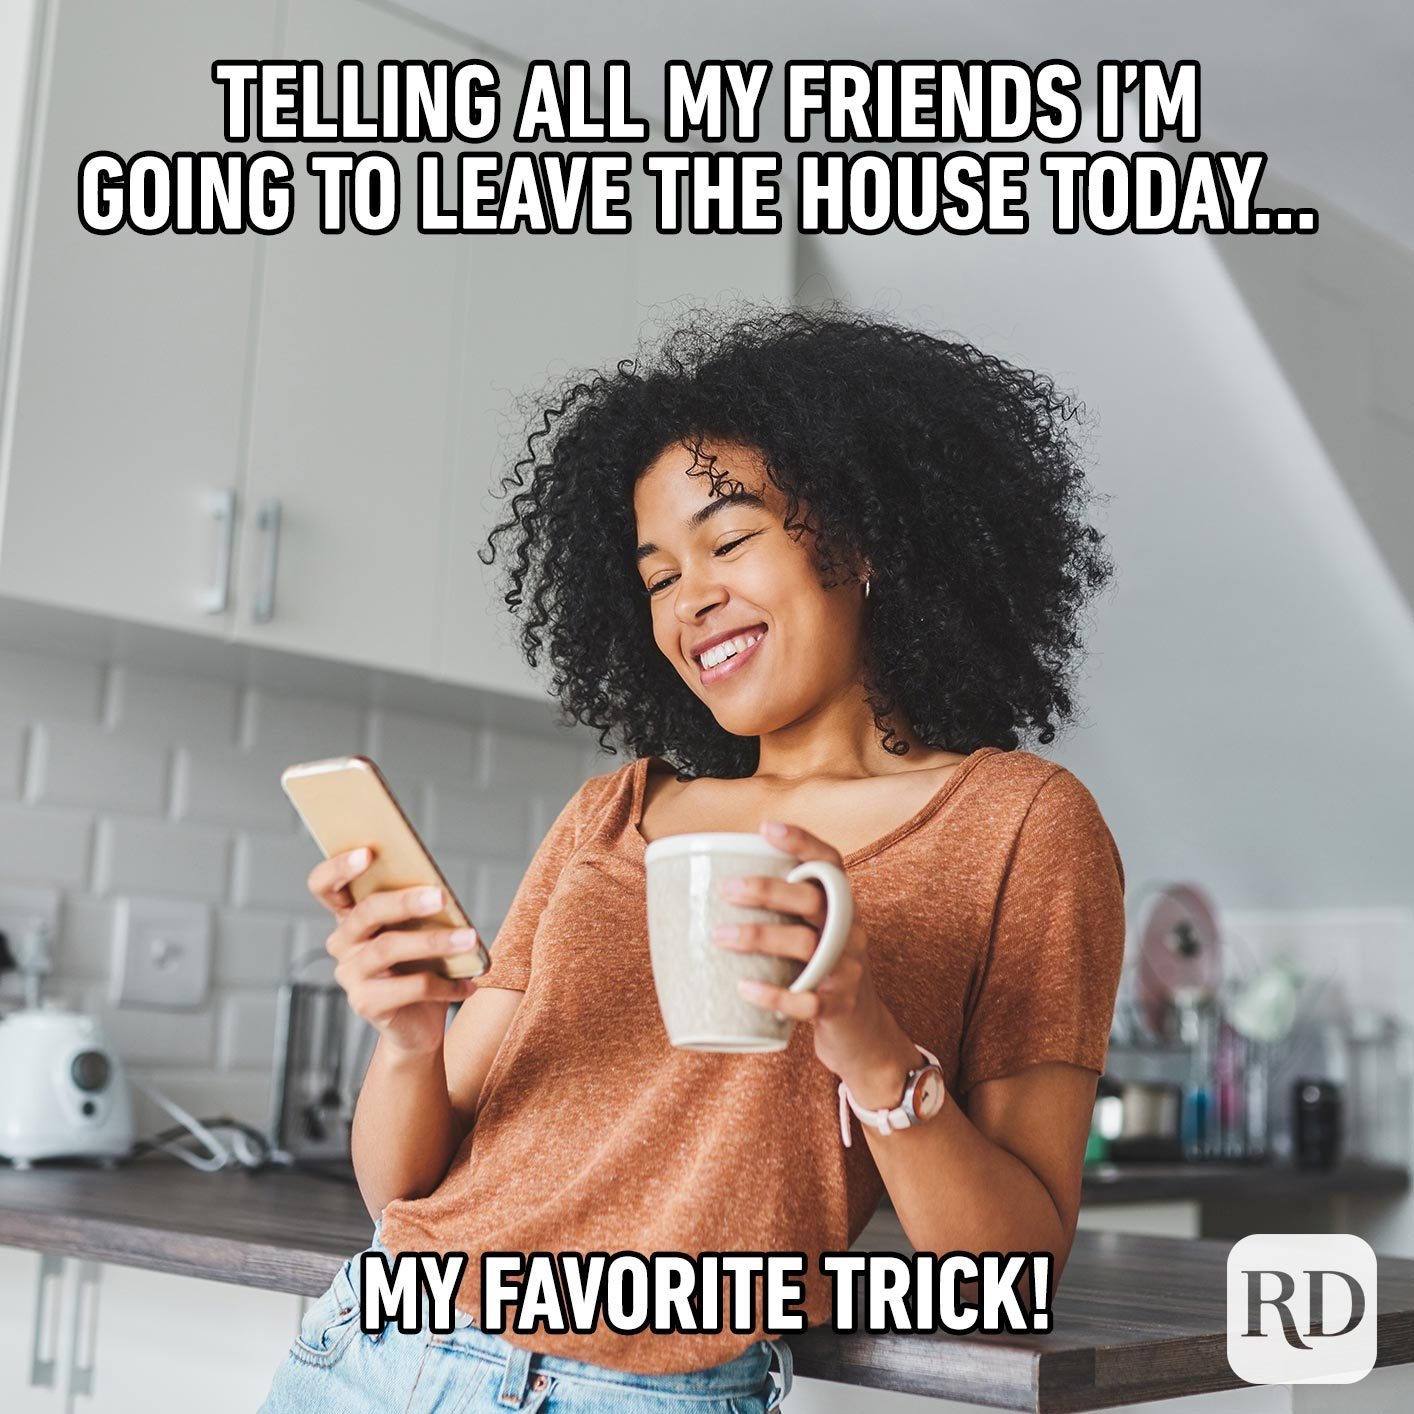 Woman laughing at her phone. Meme text: Telling all my friends I'm going to leave the house today… my favorite trick!